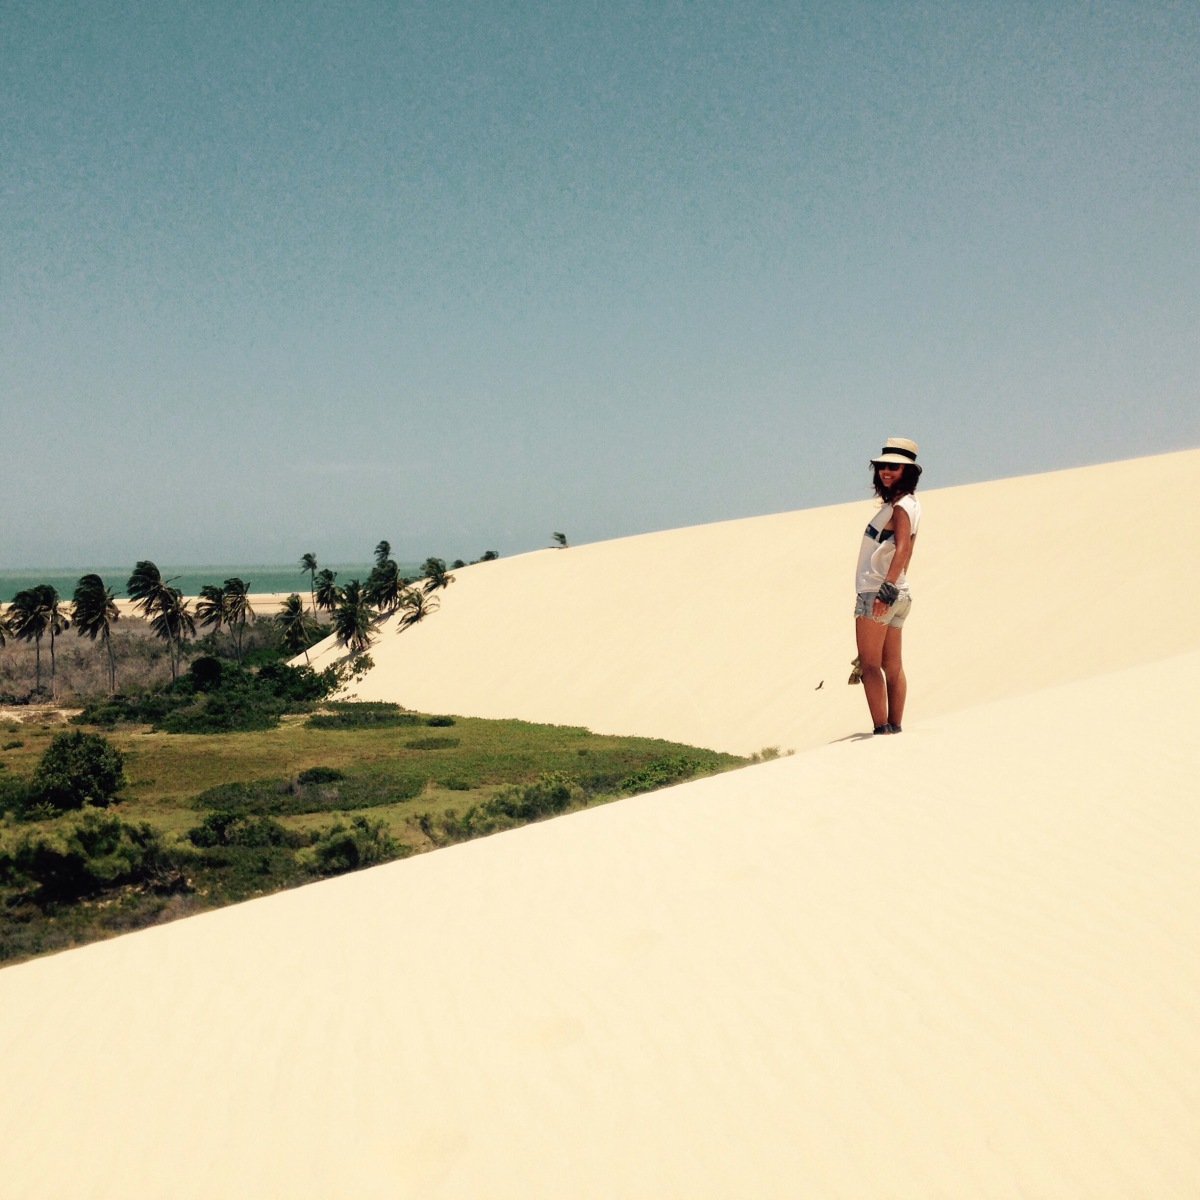 How traveling teaches us about love : the rebound lover, Jericoacoara,Brazil